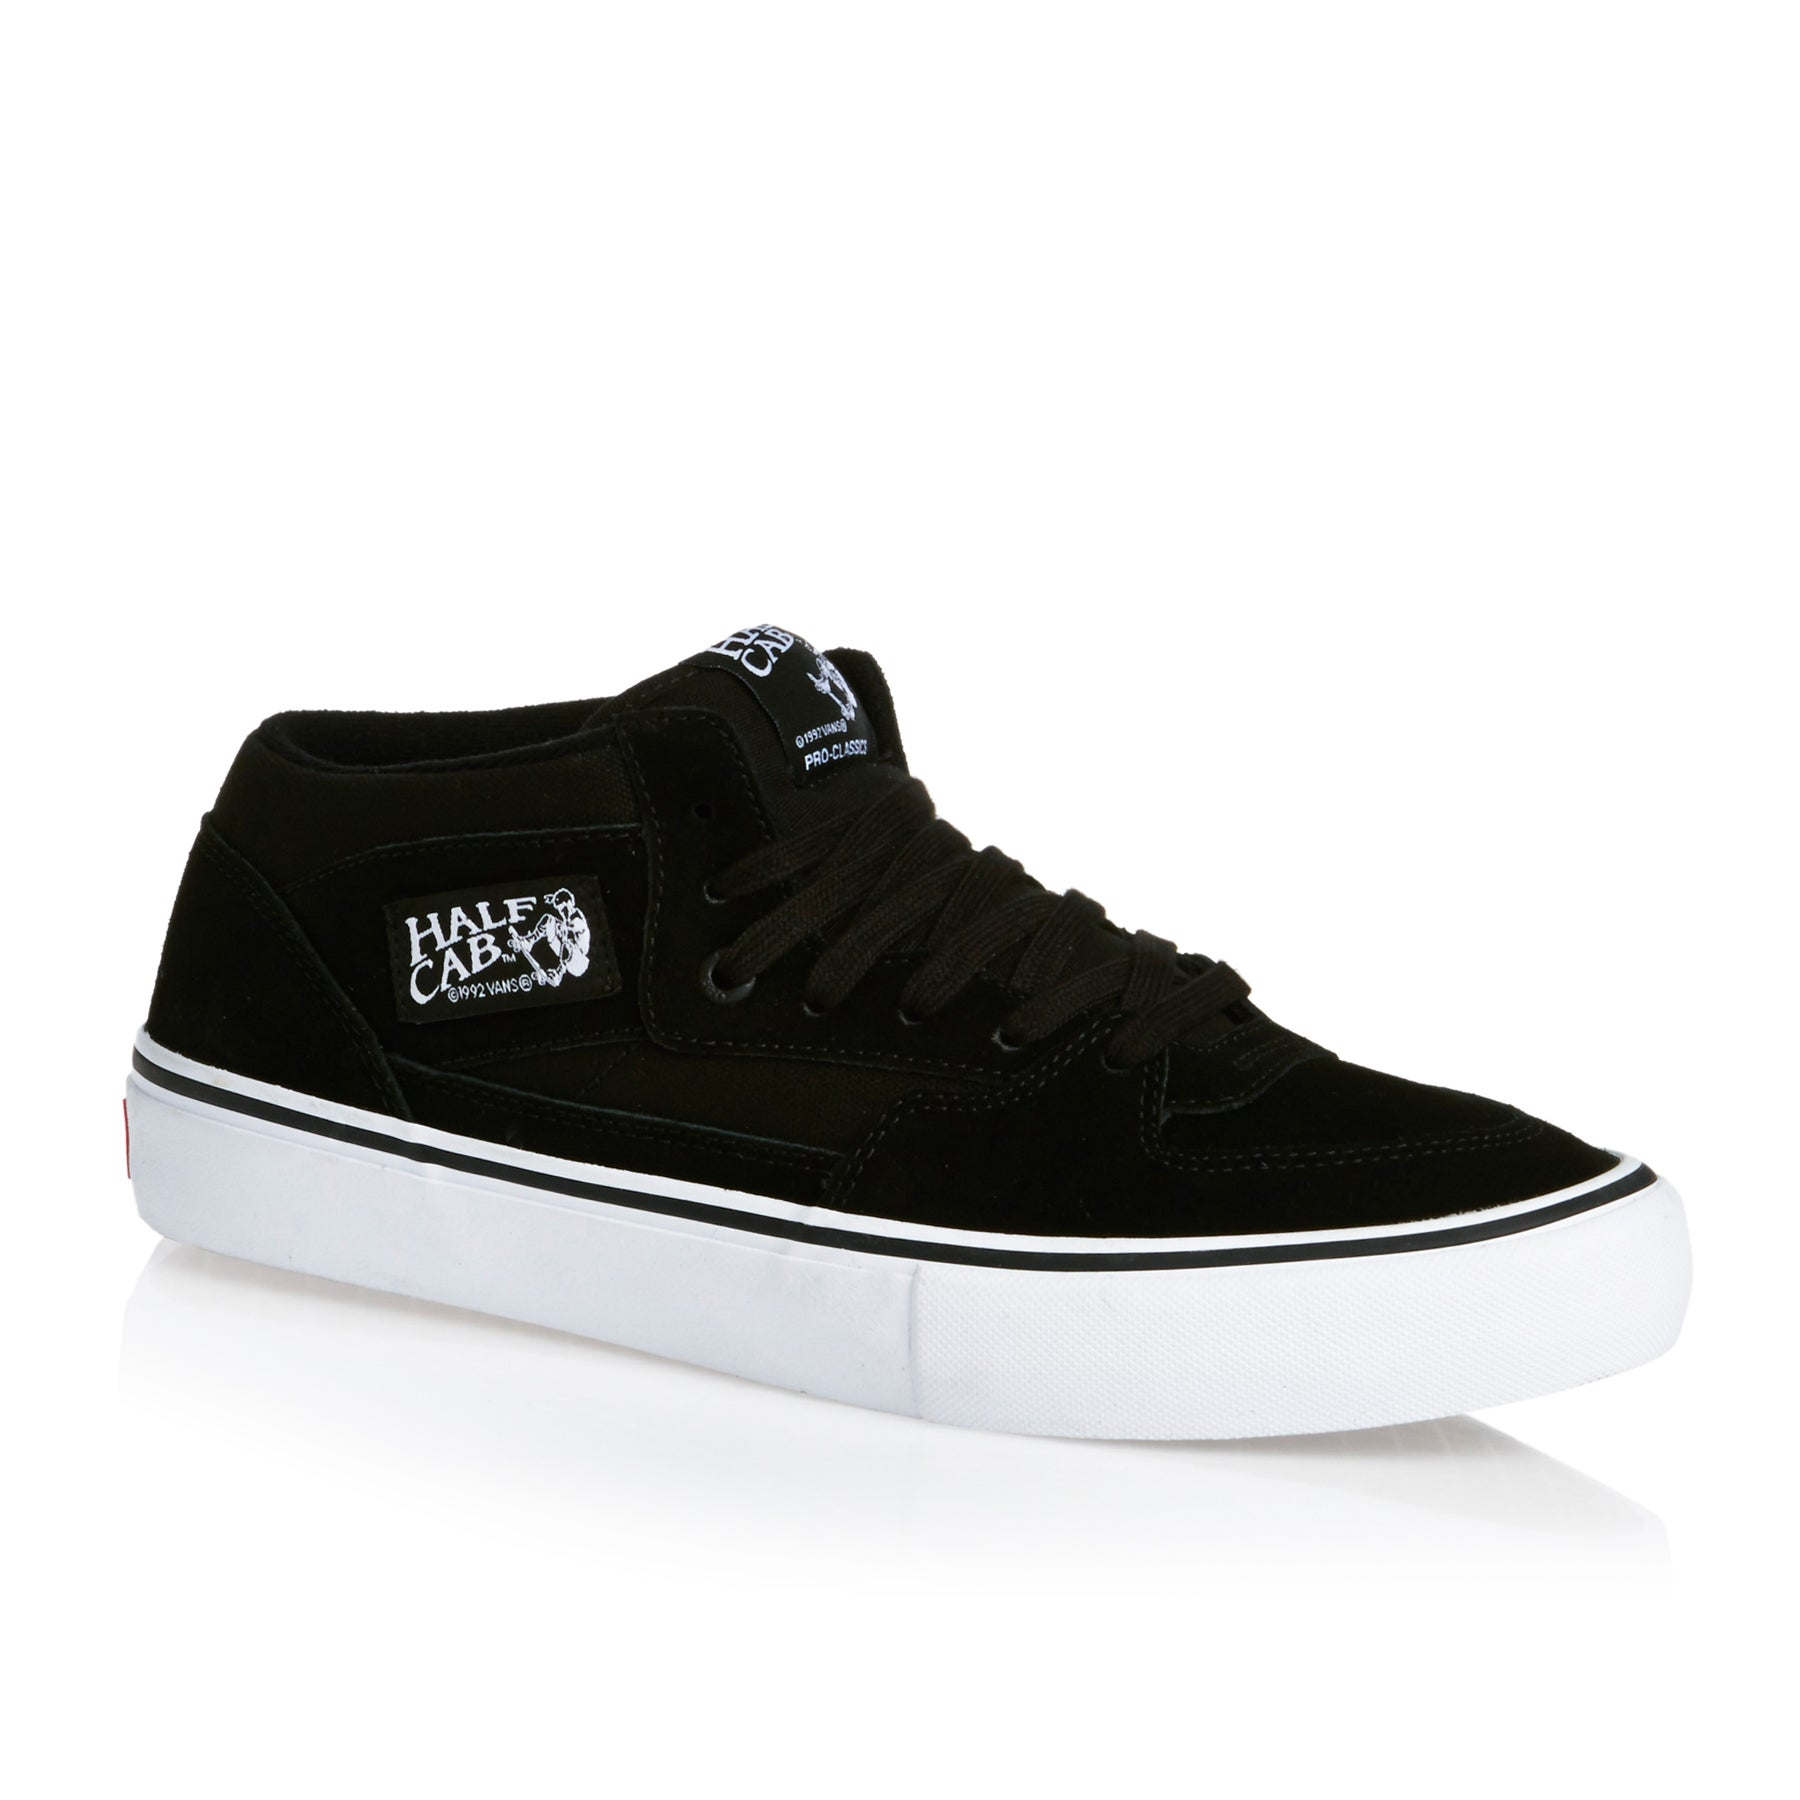 2969ff0aa7fb3c Vans Half Cab Pro Shoes available from Surfdome